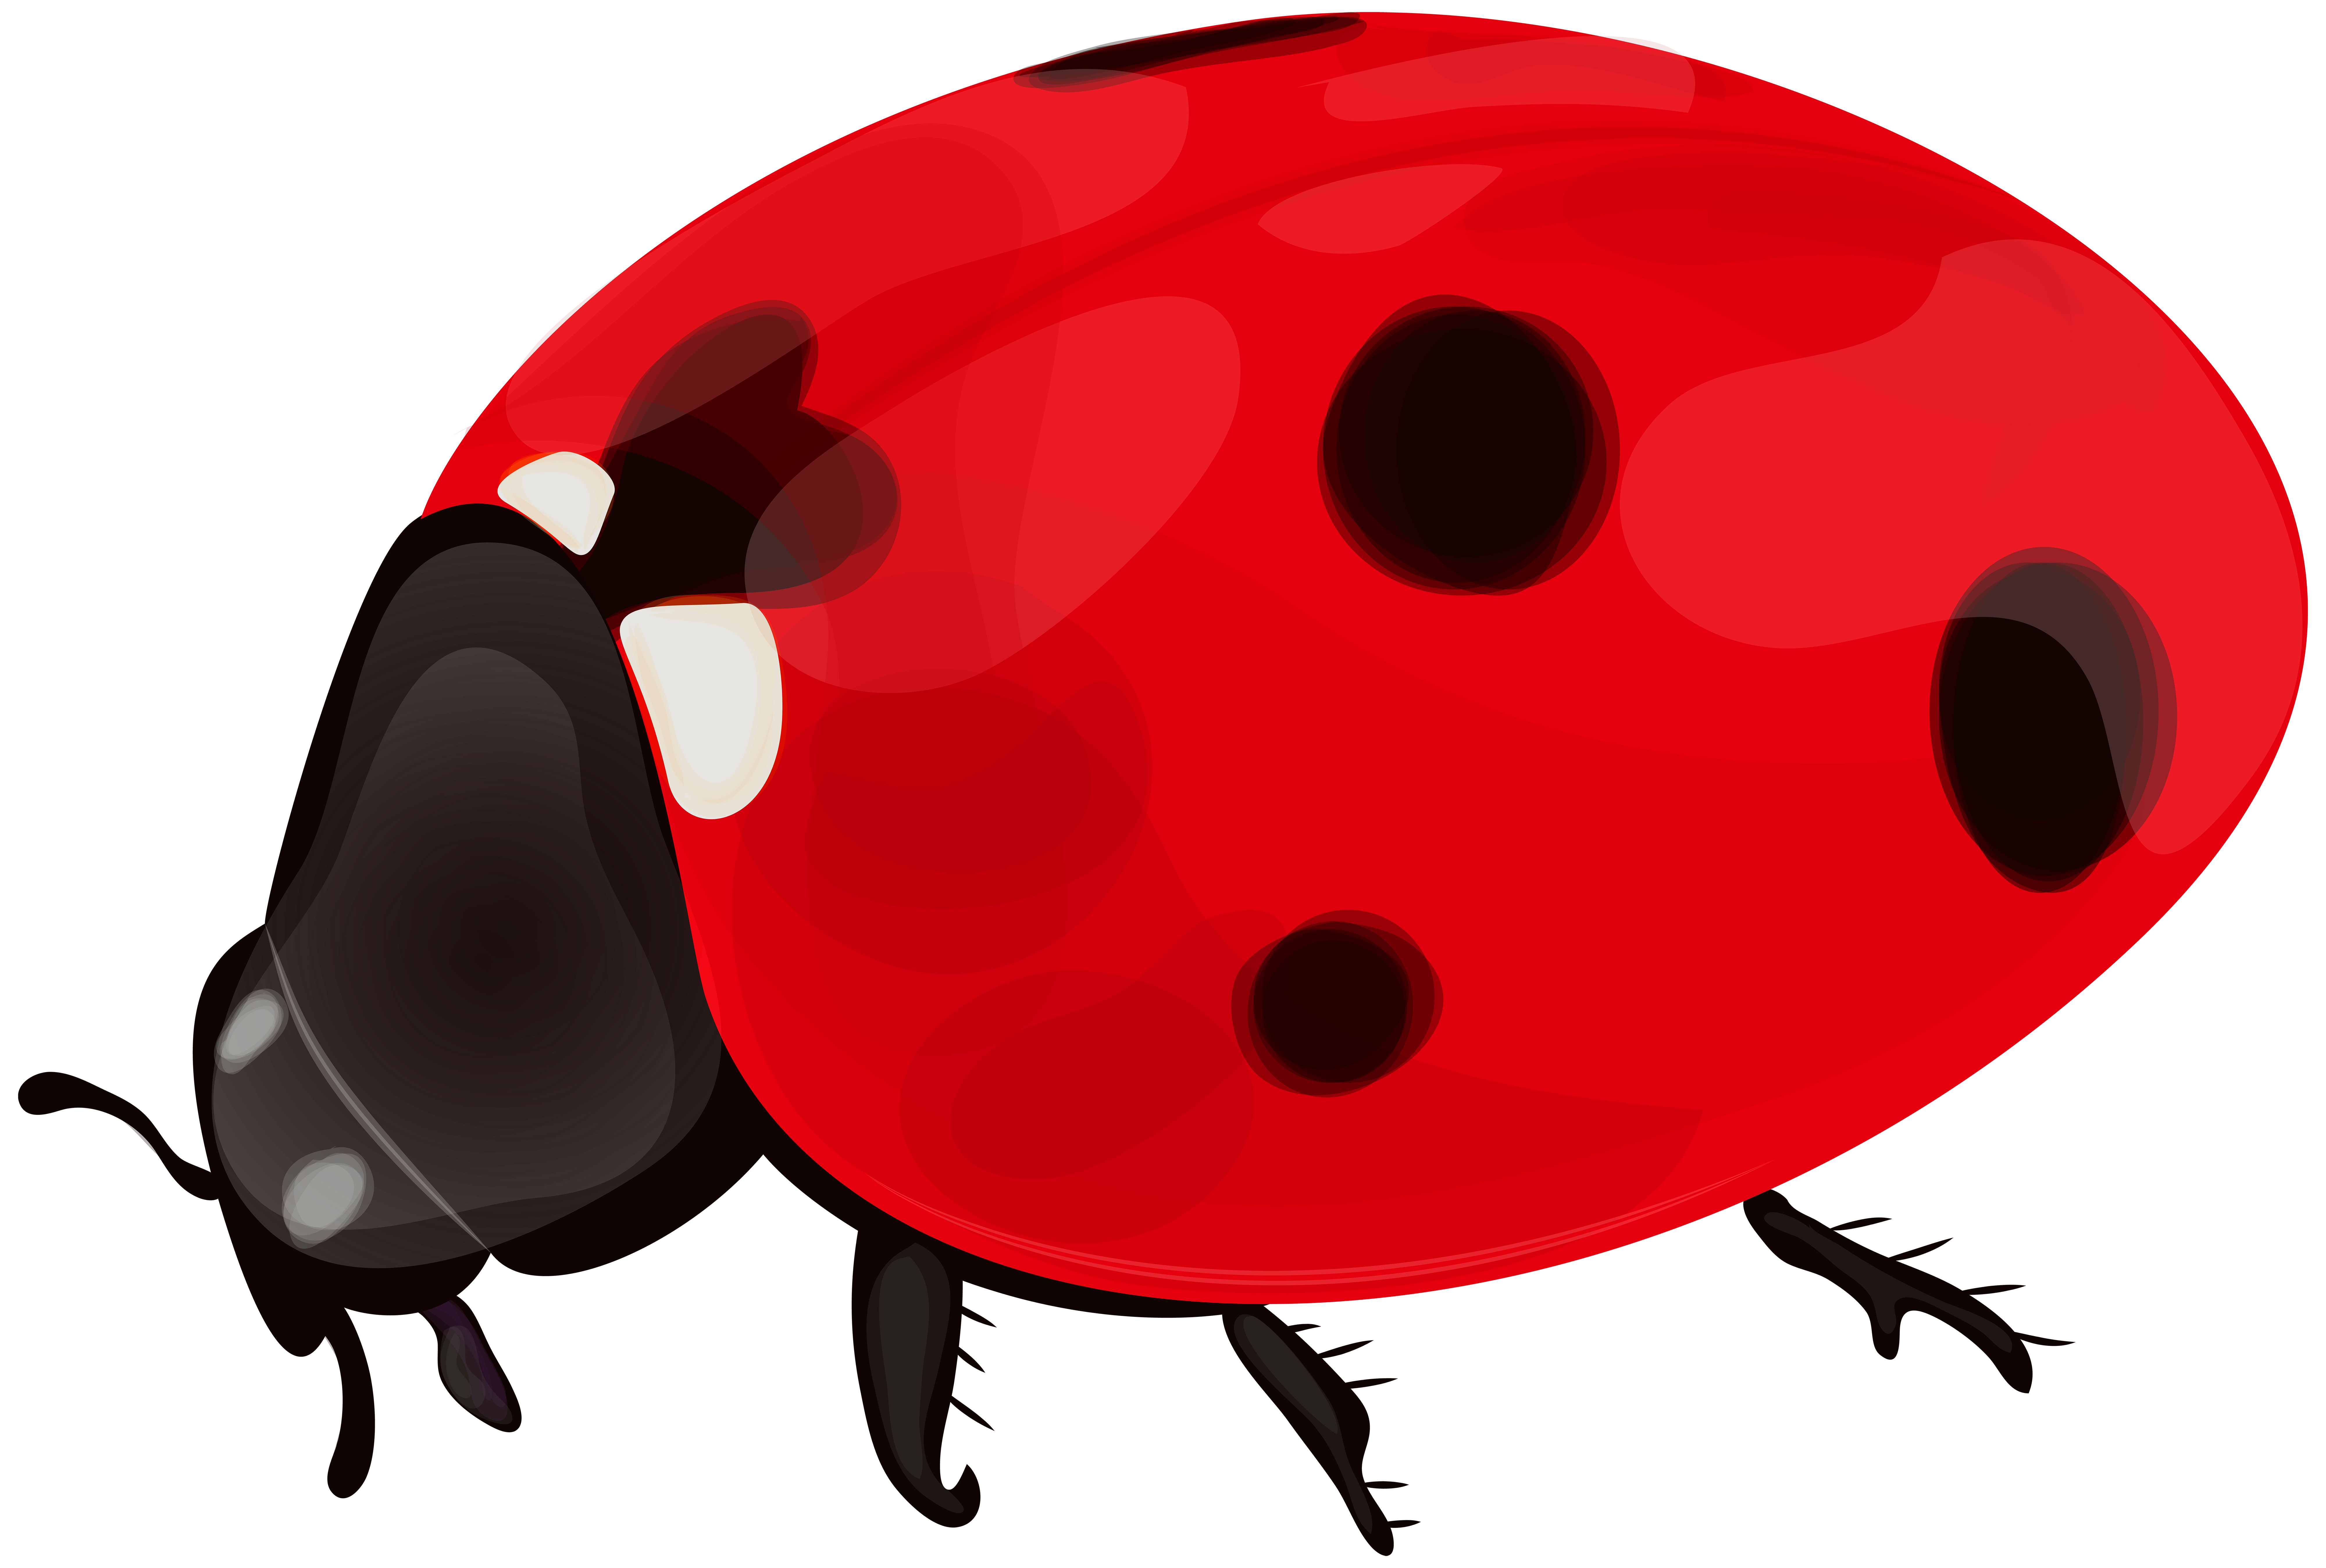 banner library stock Png clip art gallery. Ladybug clipart transparent background.